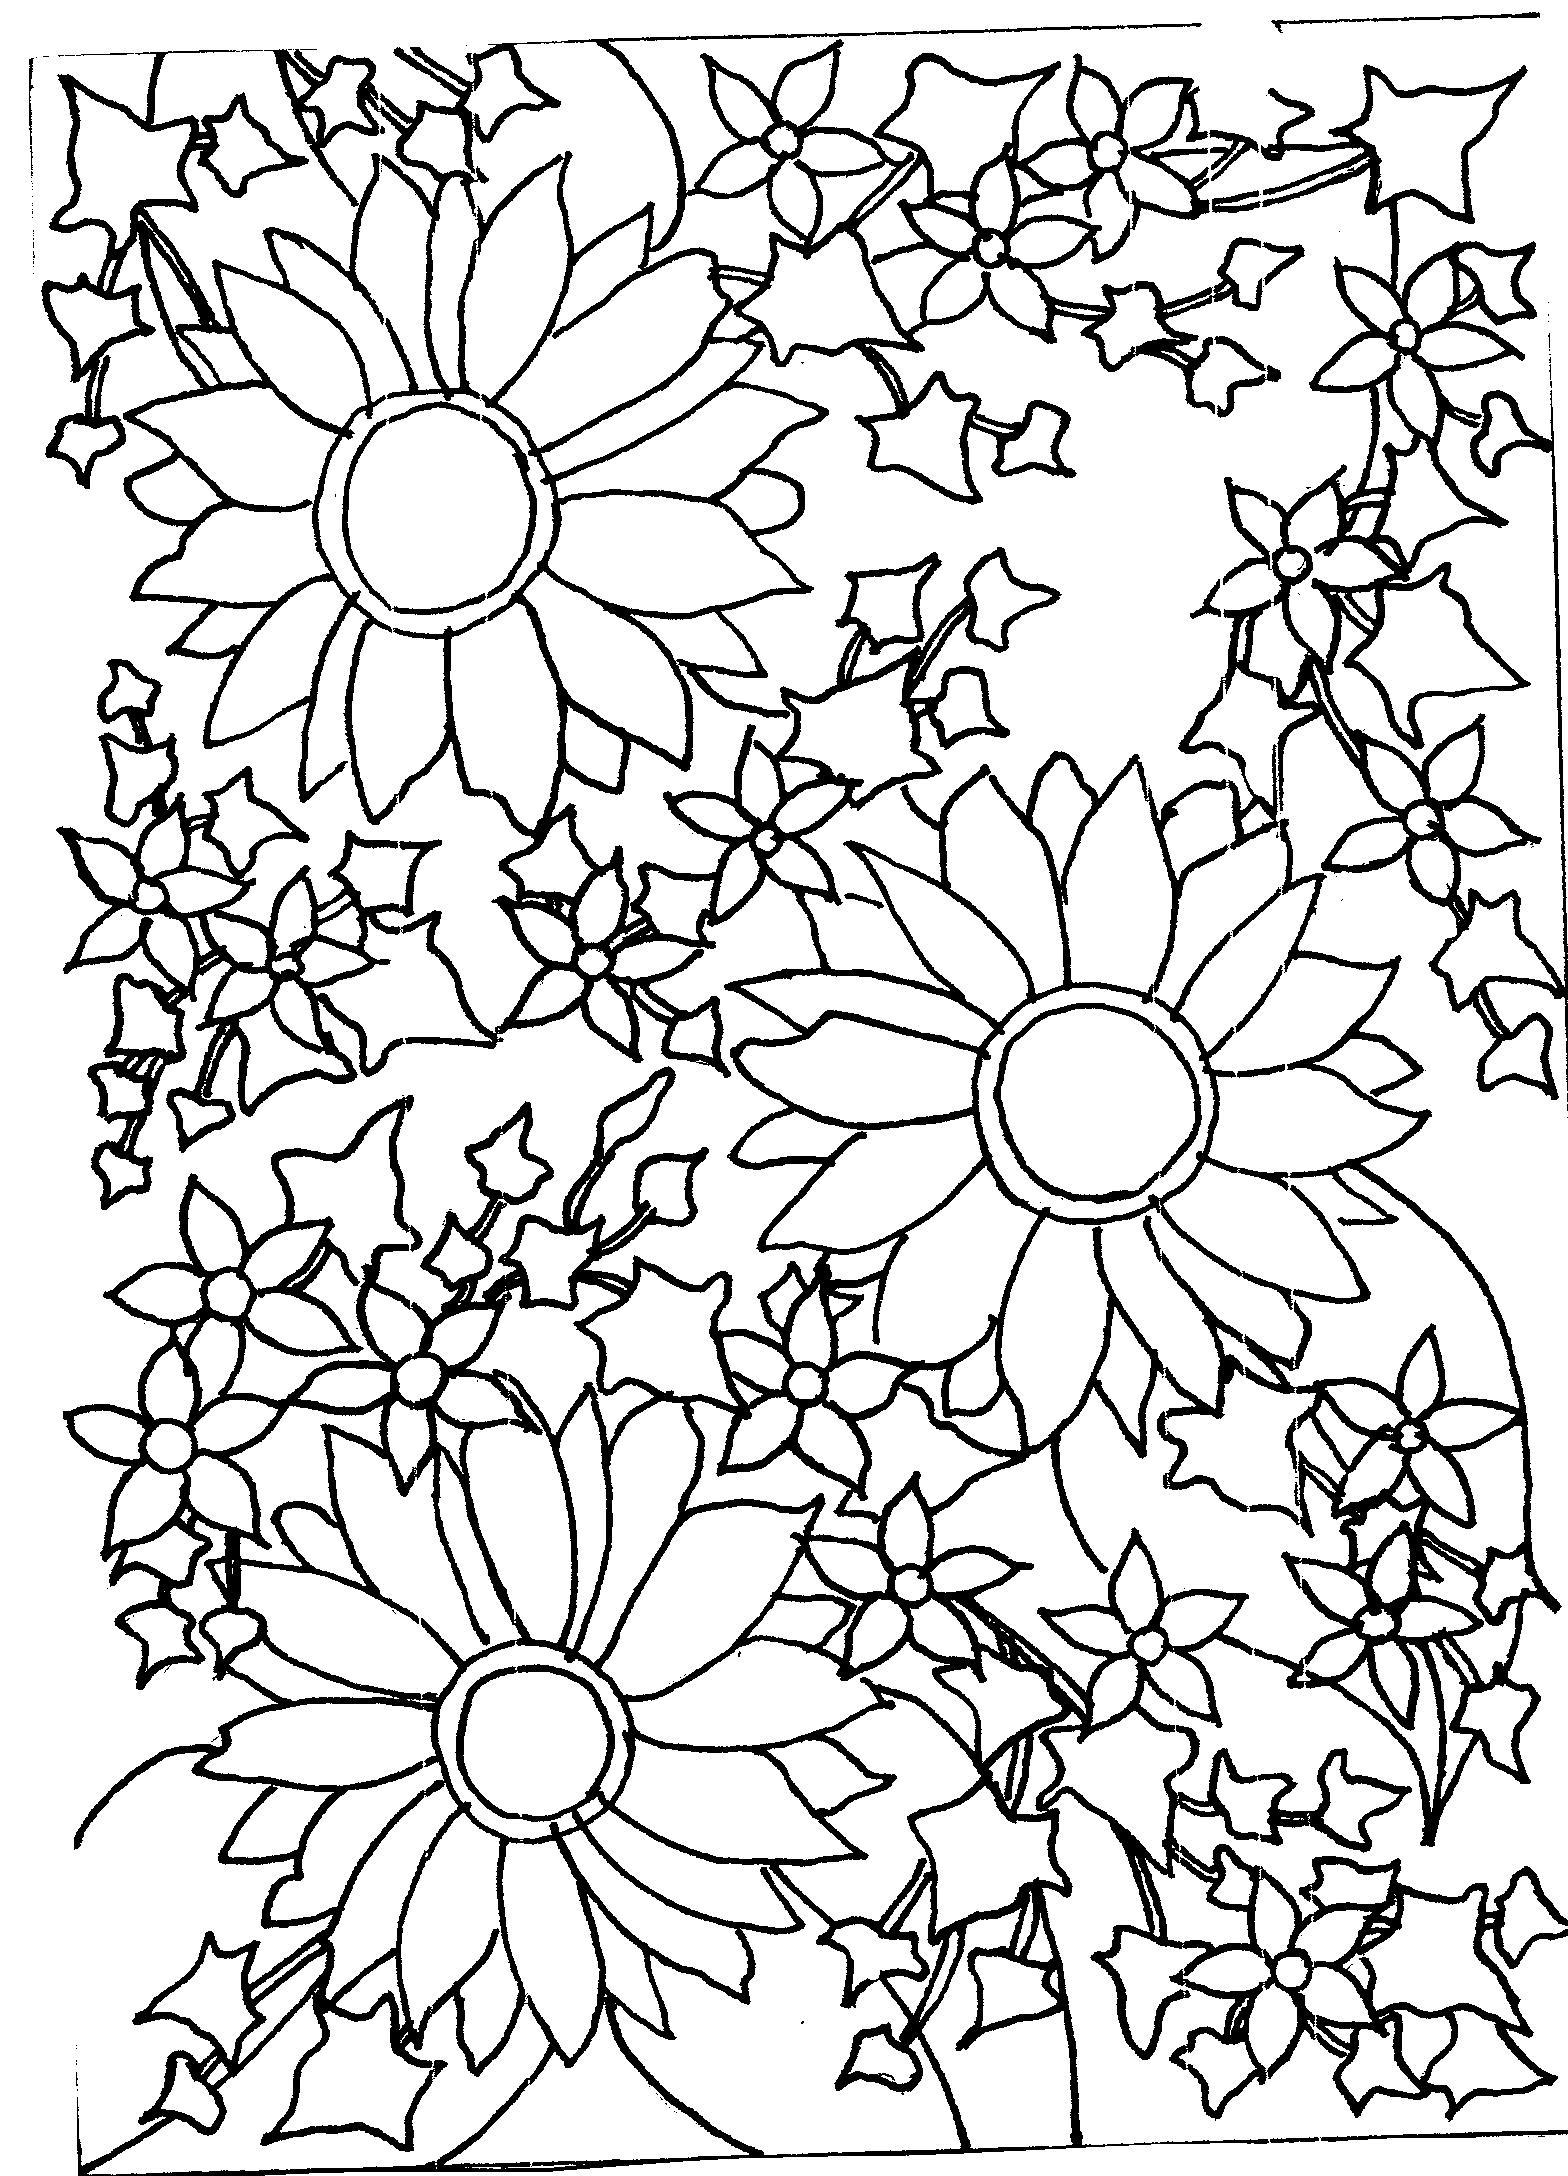 flowers outlines for colouring sunflowers mrs chucklebeary39s garden for colouring outlines flowers